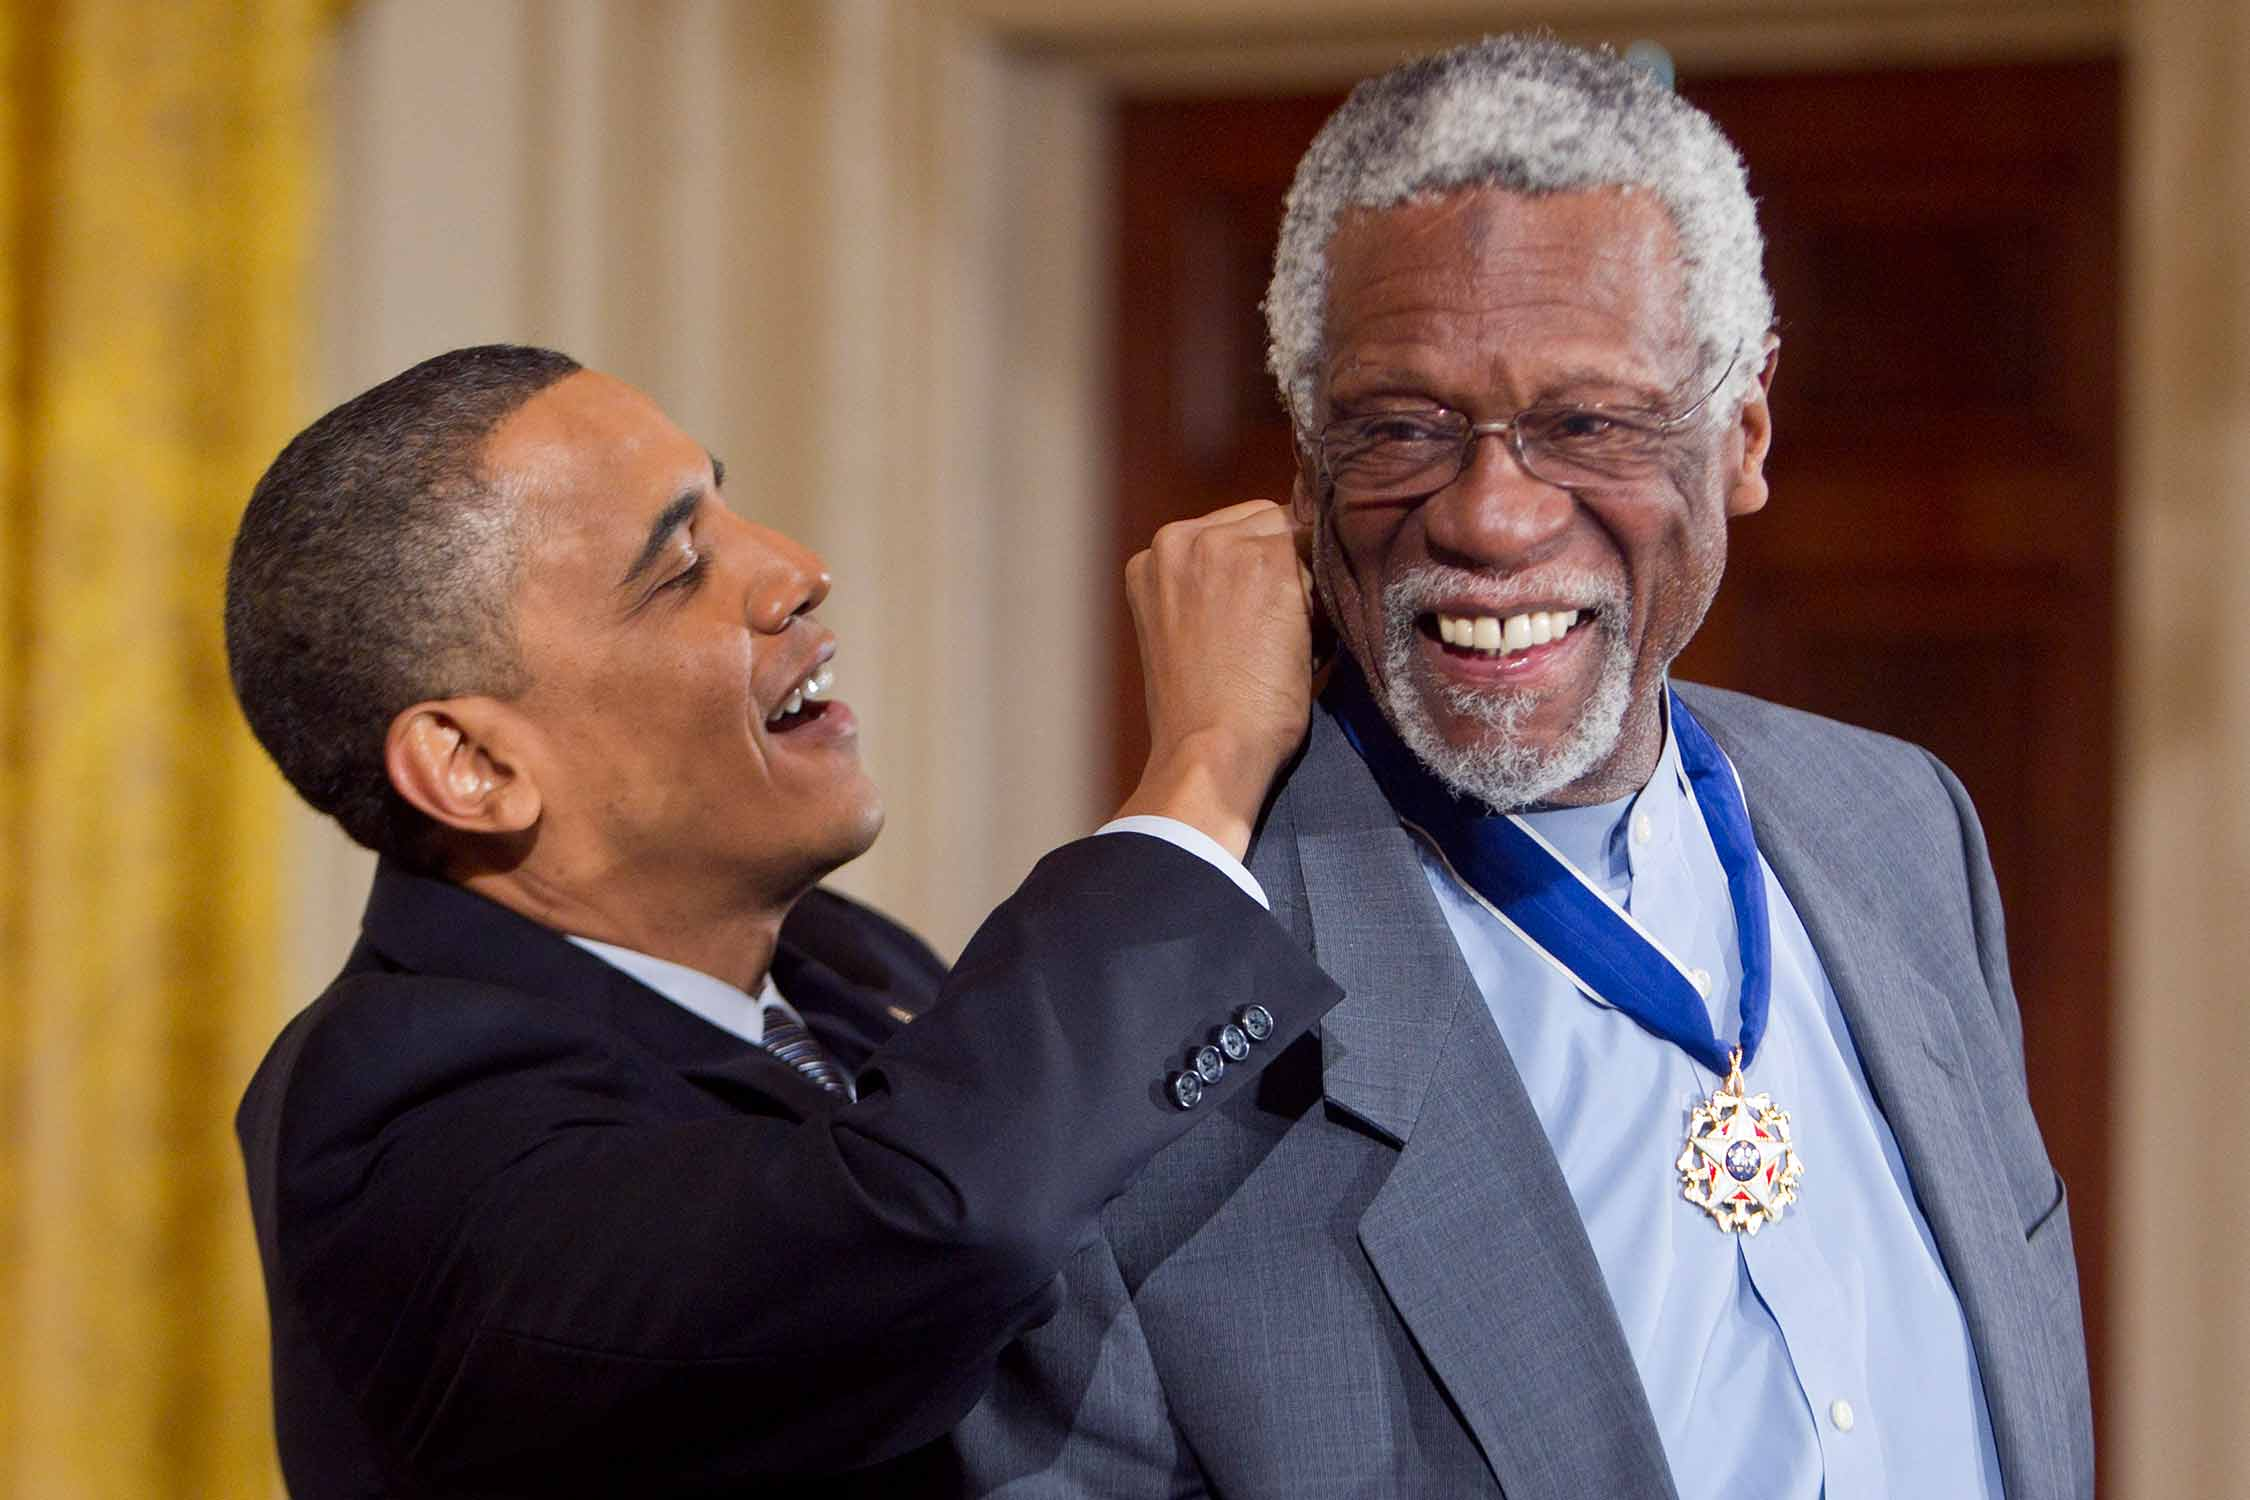 President Barack Obama presents NBA legend Bill Russell with the Medal of Freedom in 2011.